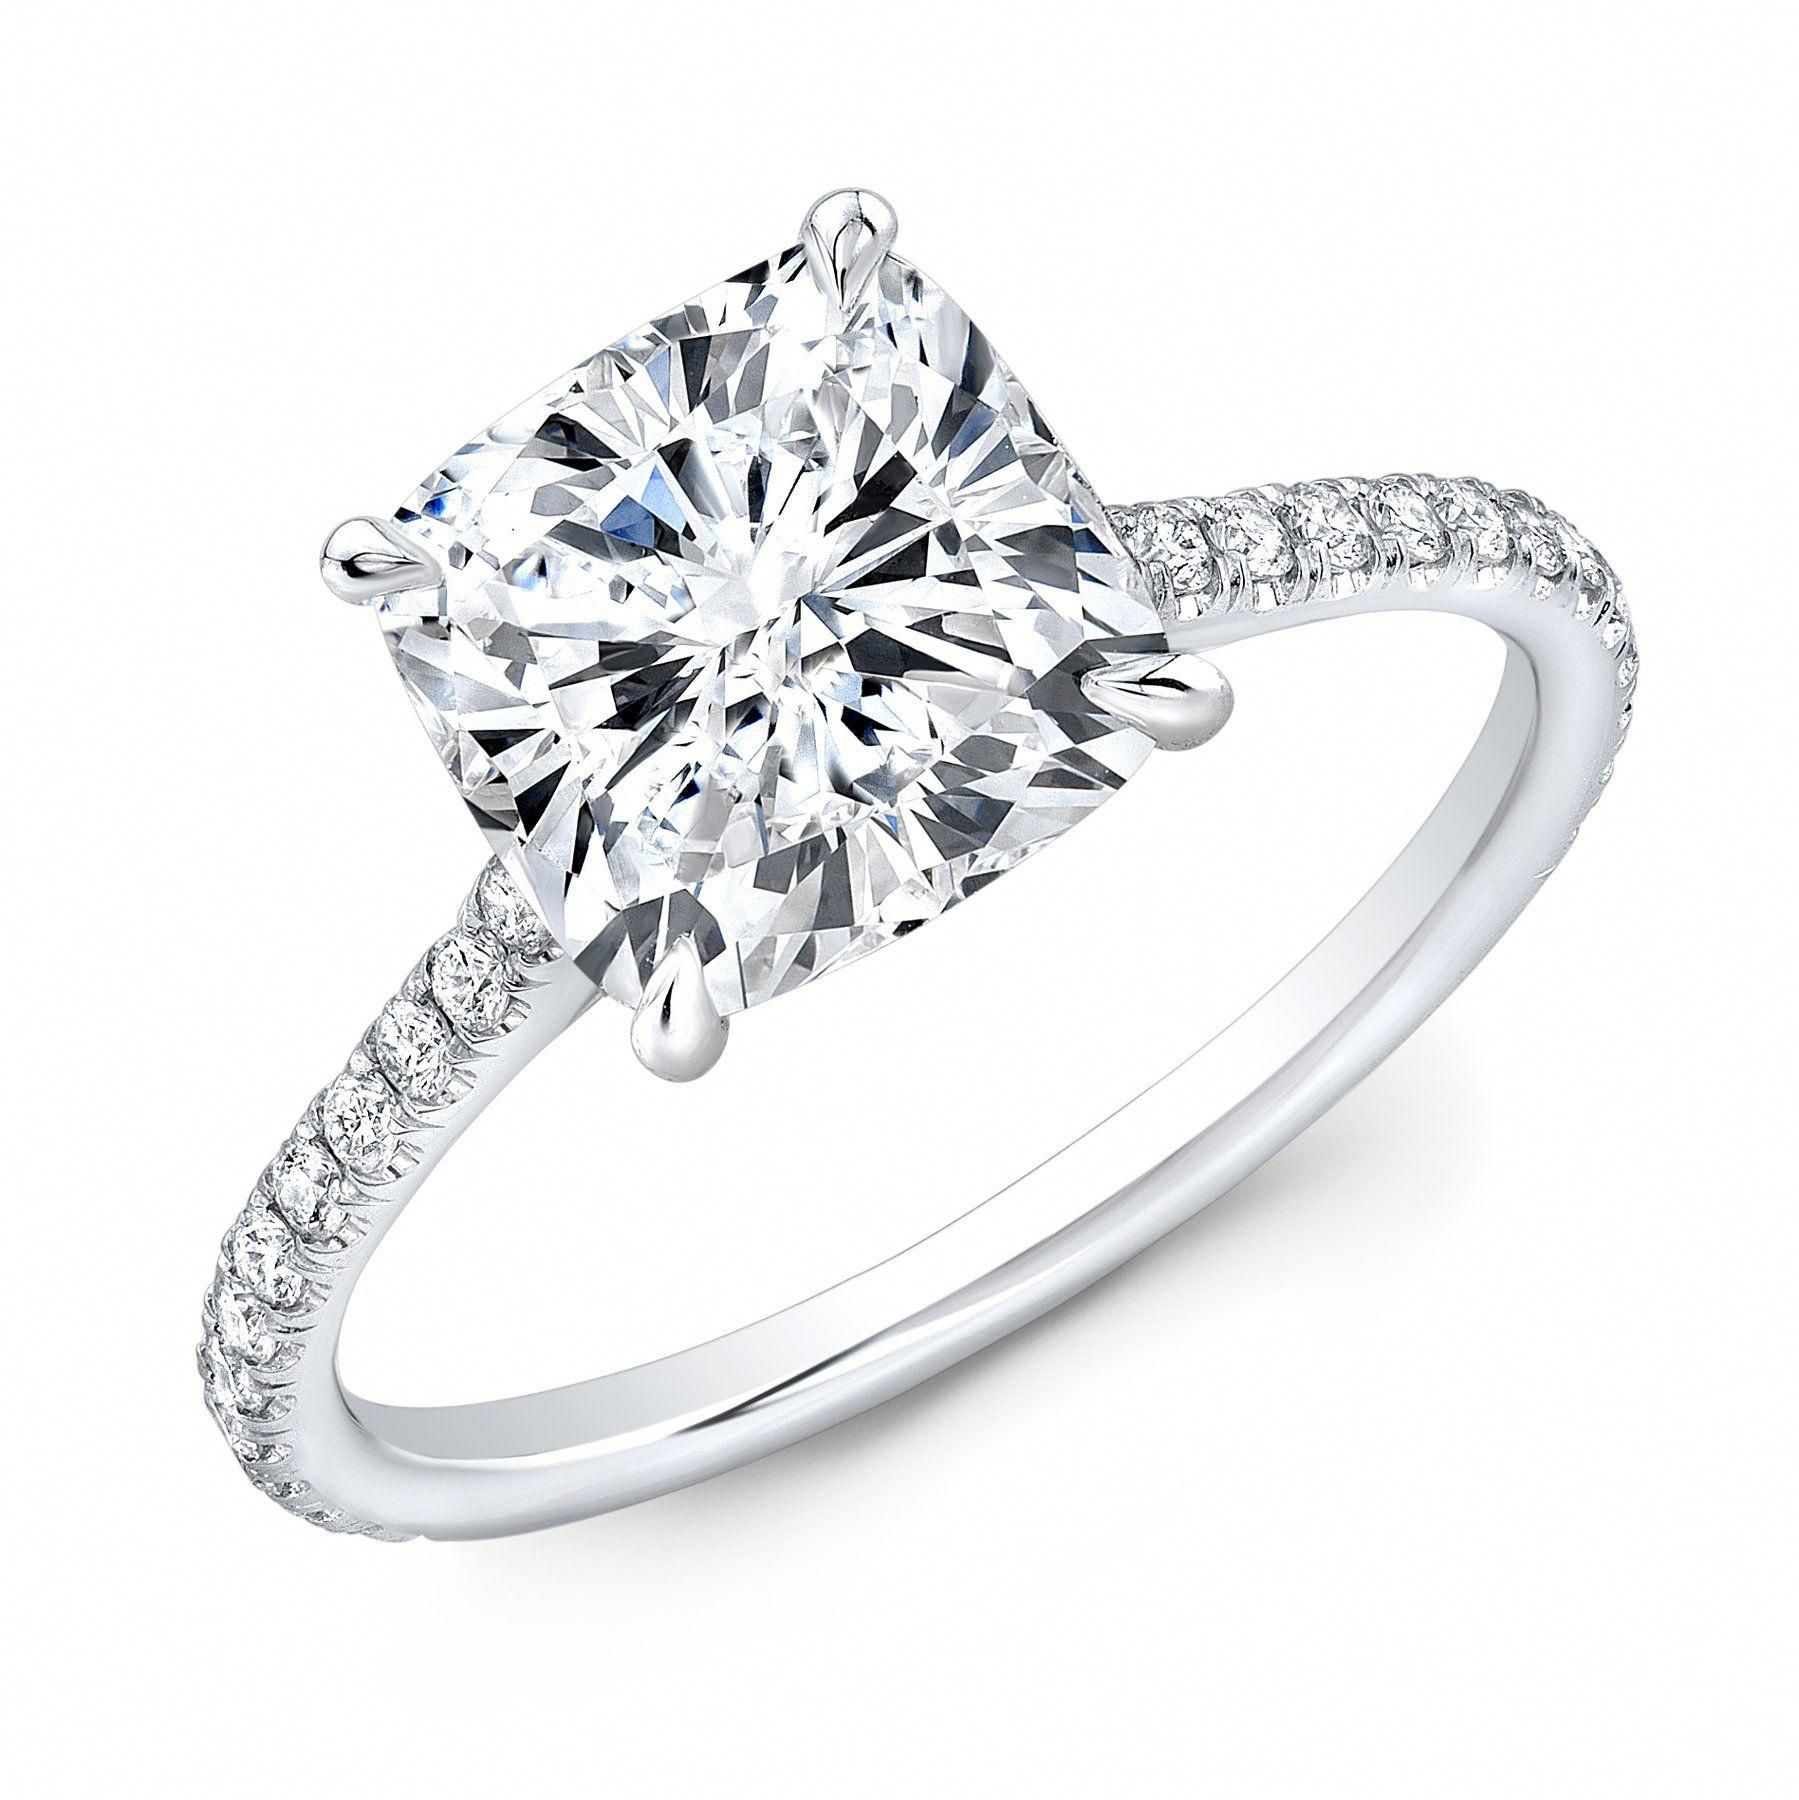 615e545d5 Bonjour Cushion Solitaire – King of Jewelry #solitairecutring Cushion  Solitaire, Natural Cushions, Gia